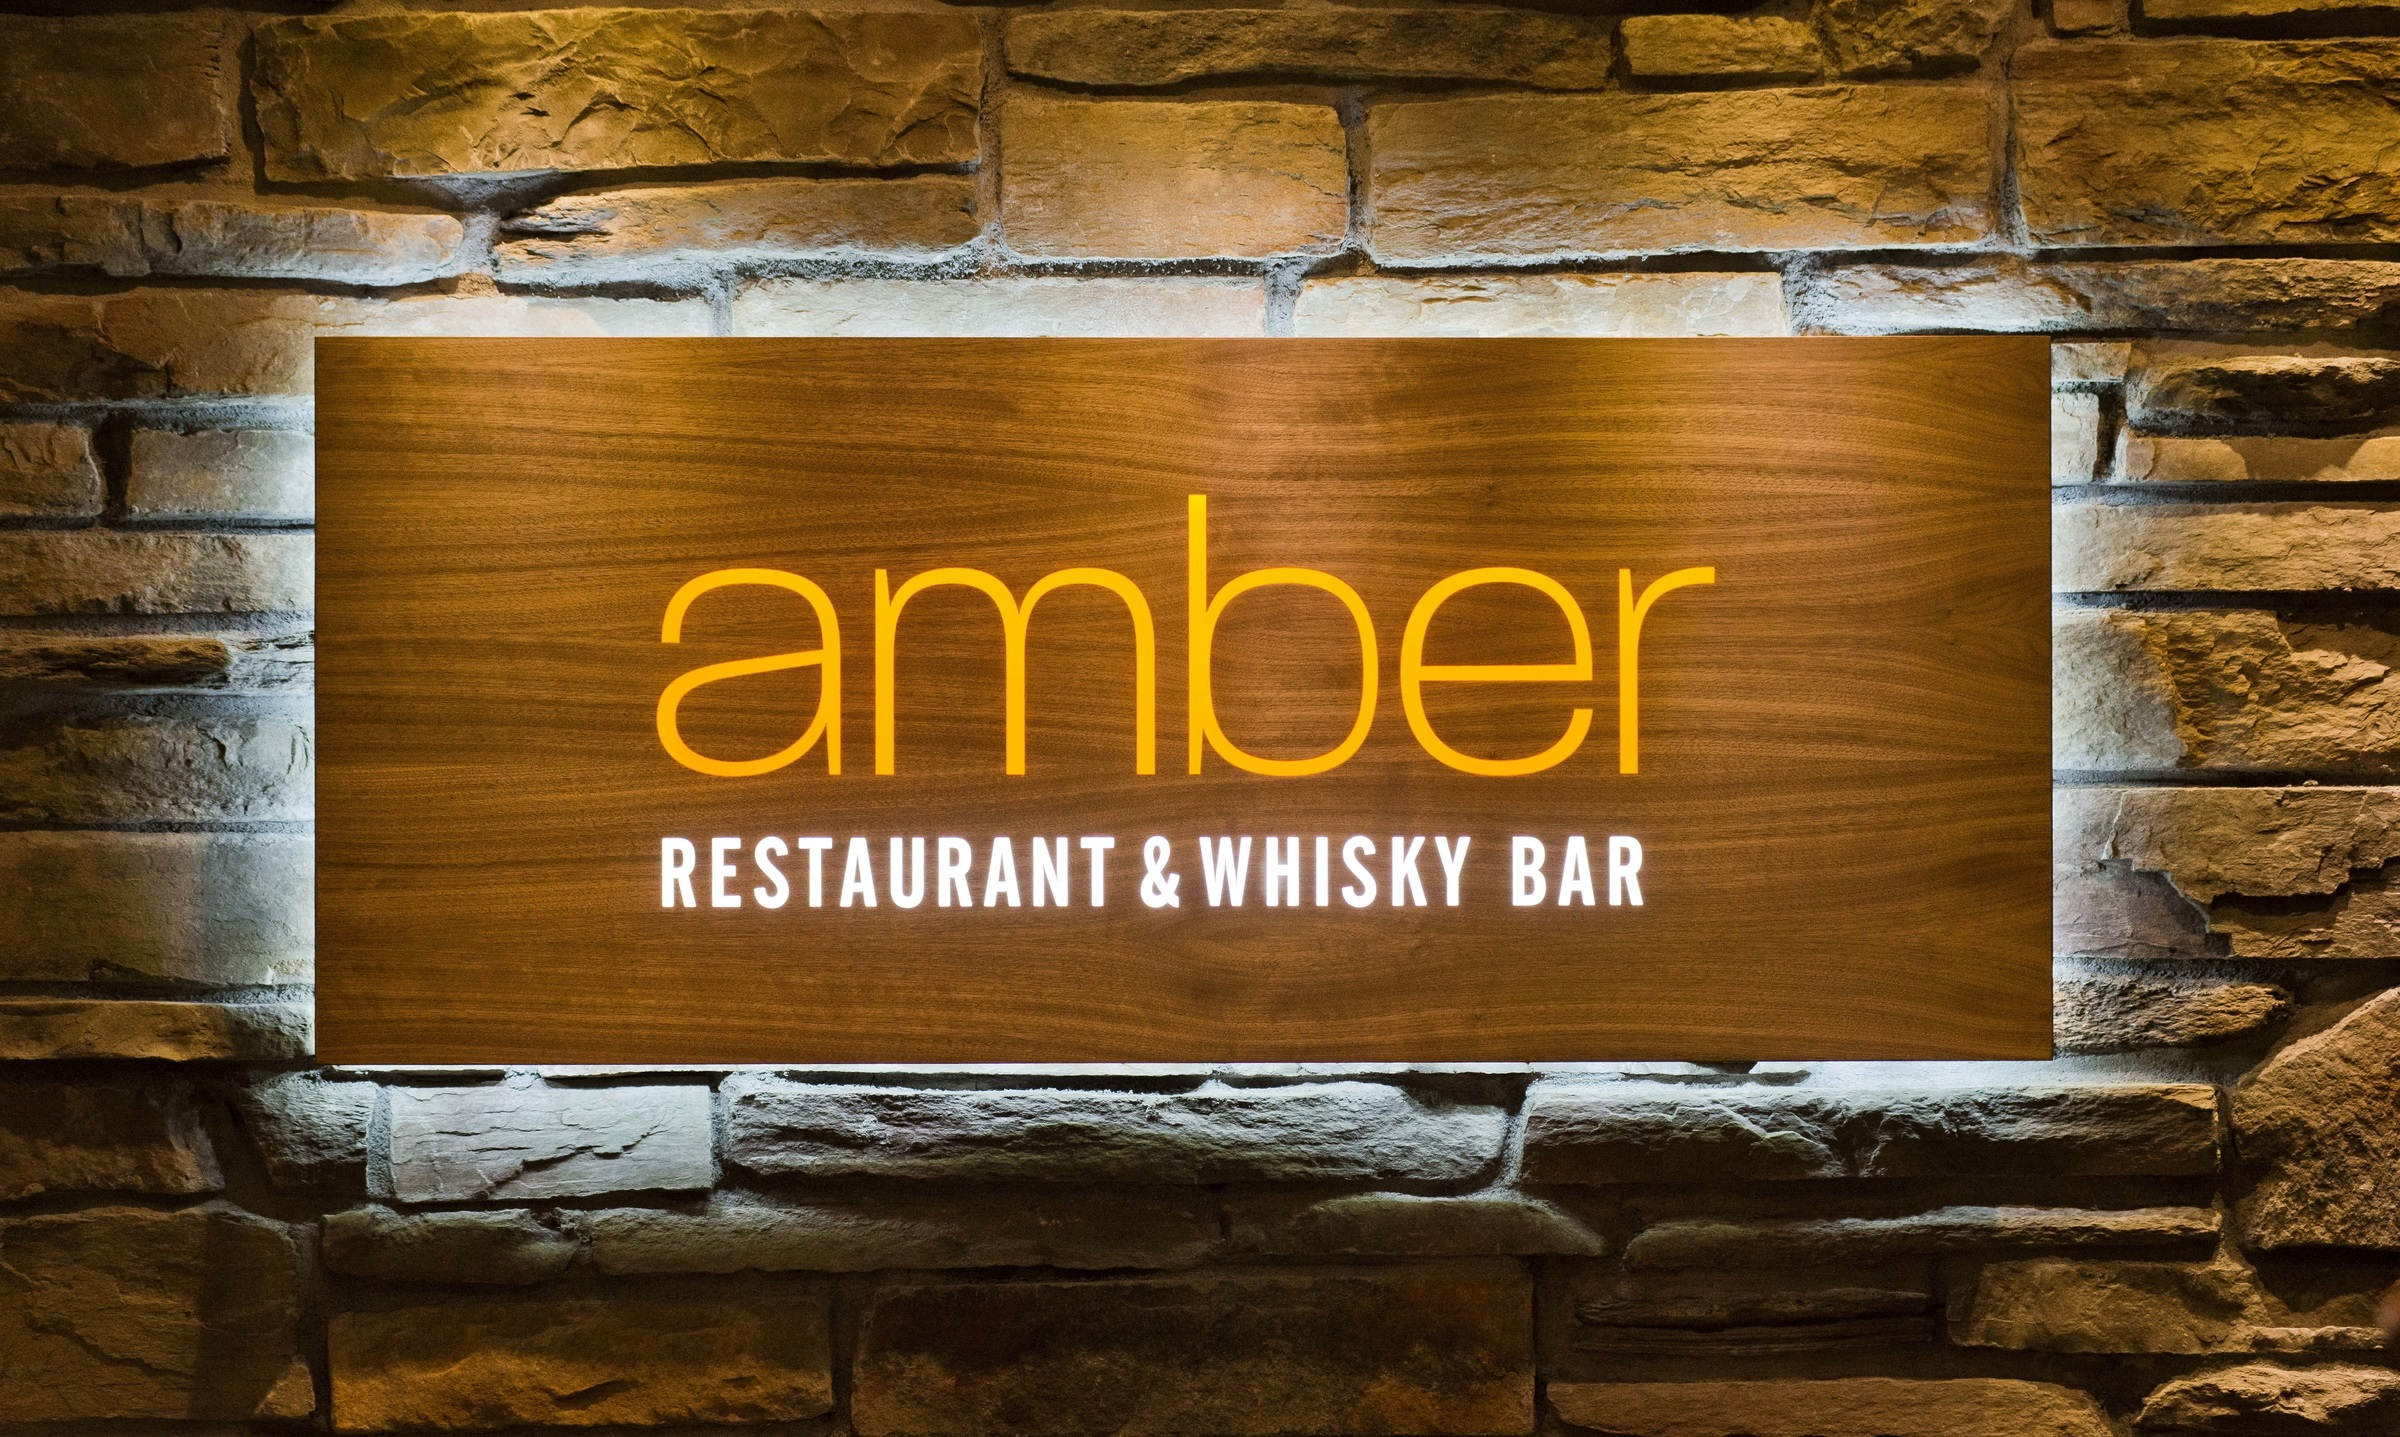 Image of Amber Restaurant at The Scotch Whisky Experience